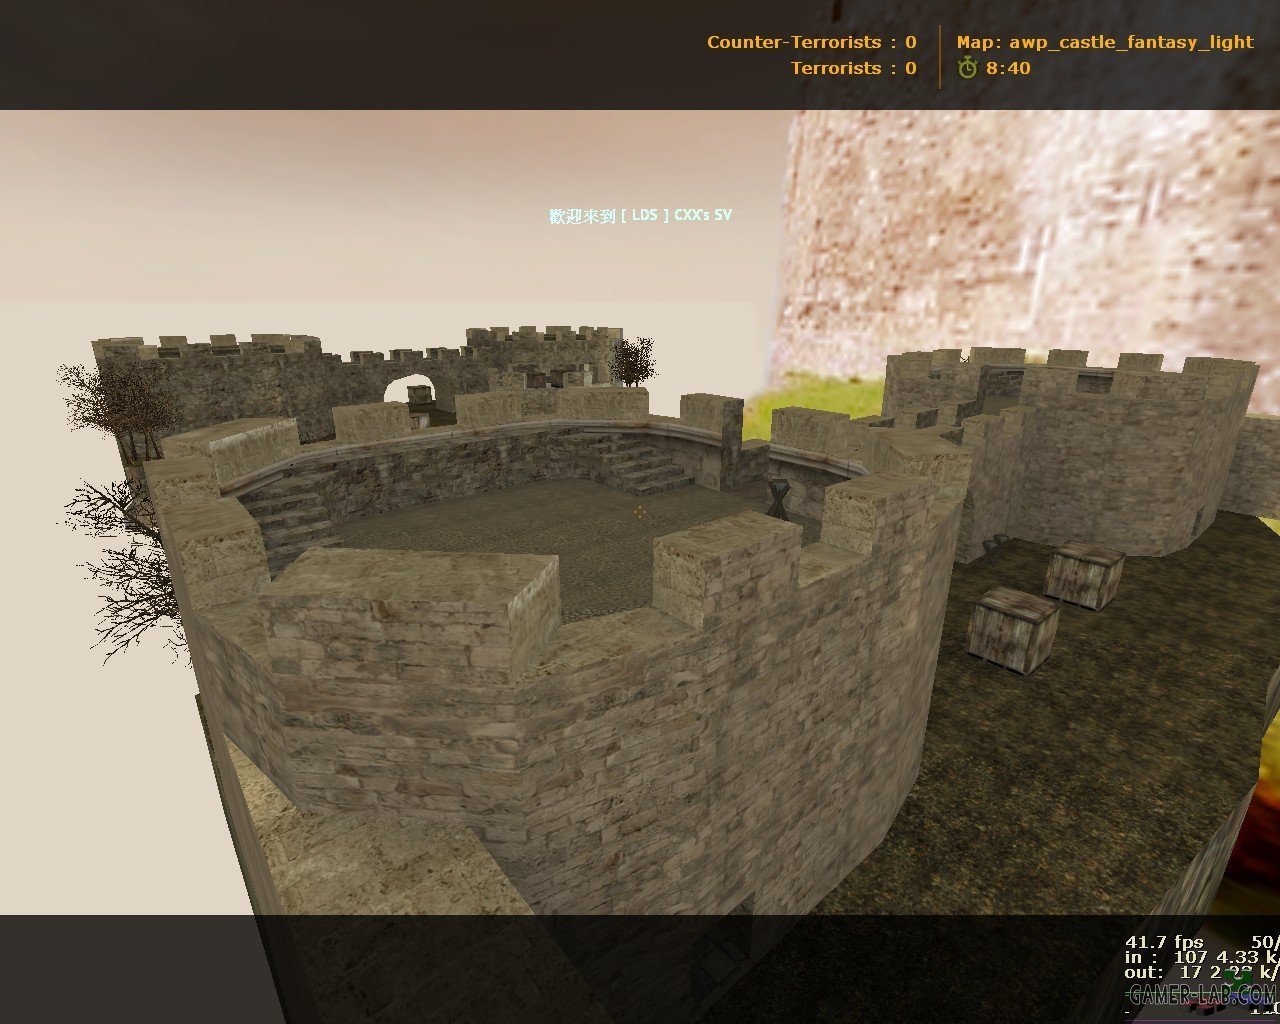 awp_castle_fantasy_light